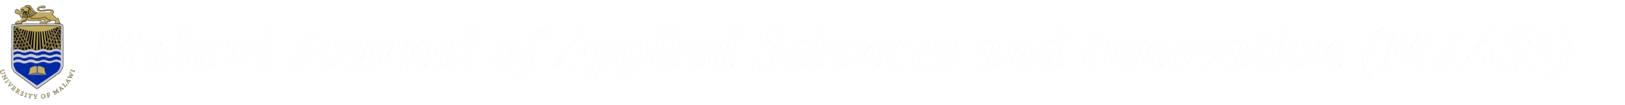 Malawi Journal of Applied Sciences Logo